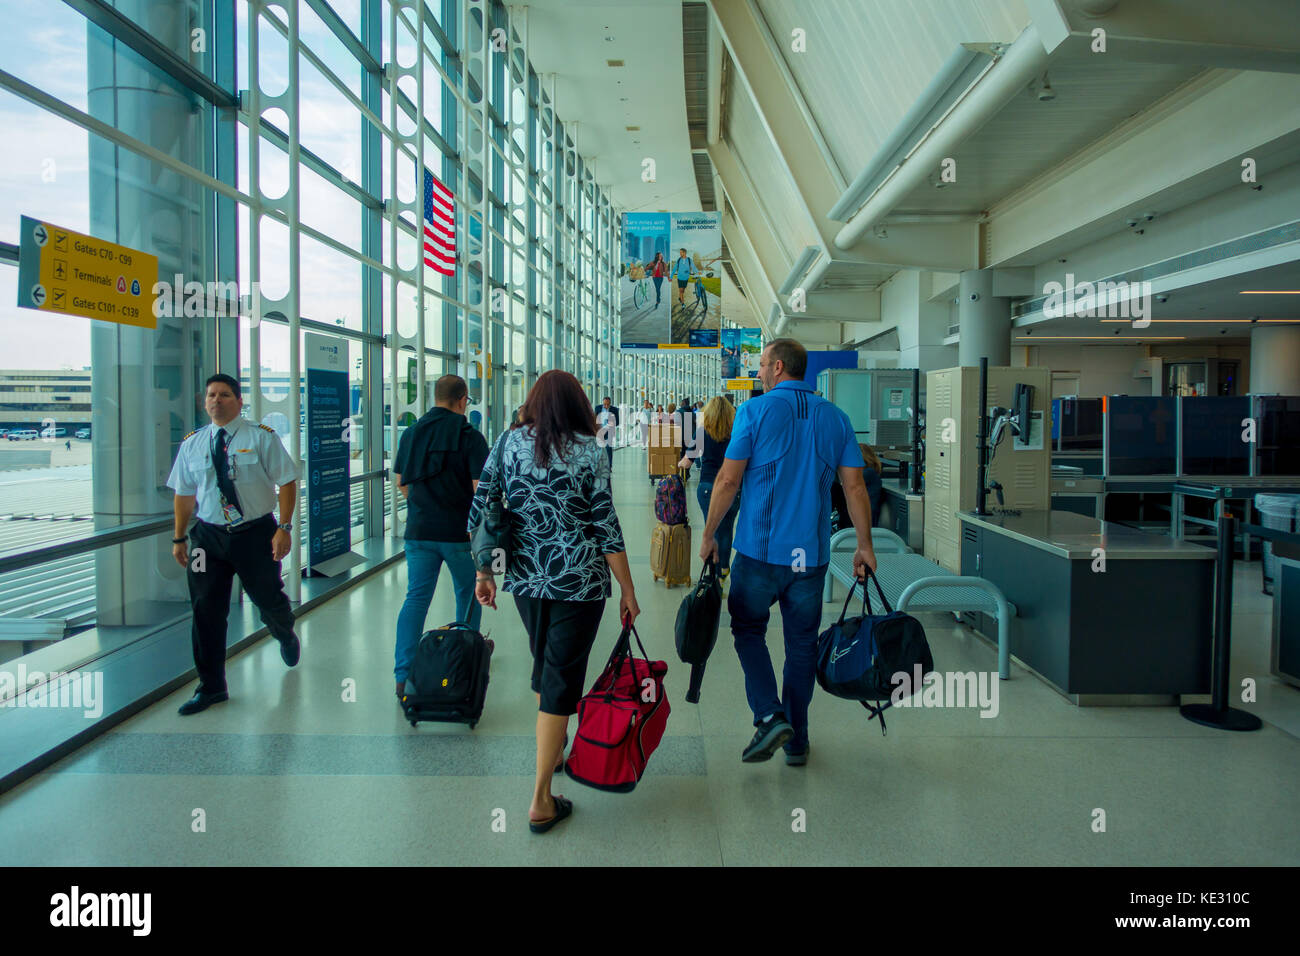 NEWARK, NJ - OCTOBER 16, 2017: Unidentified people walking at Newark Airport interior in Newark, New Jersey. Newark - Stock Image